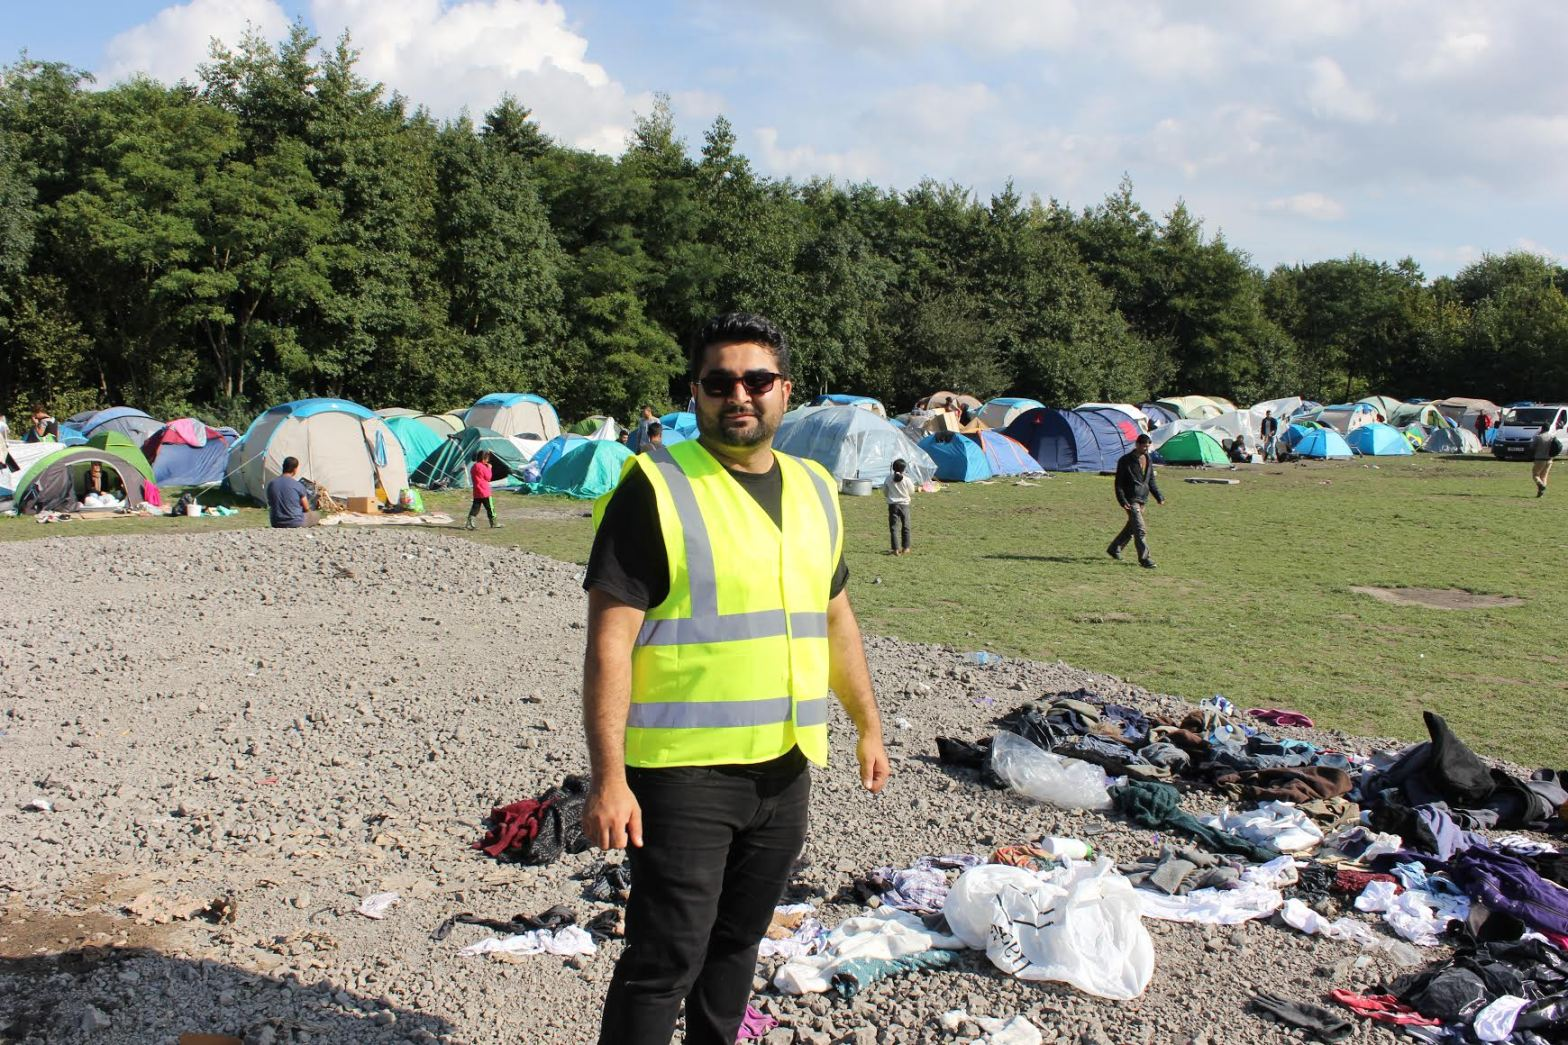 Alan Ahmad in Dunkirk refugee camp